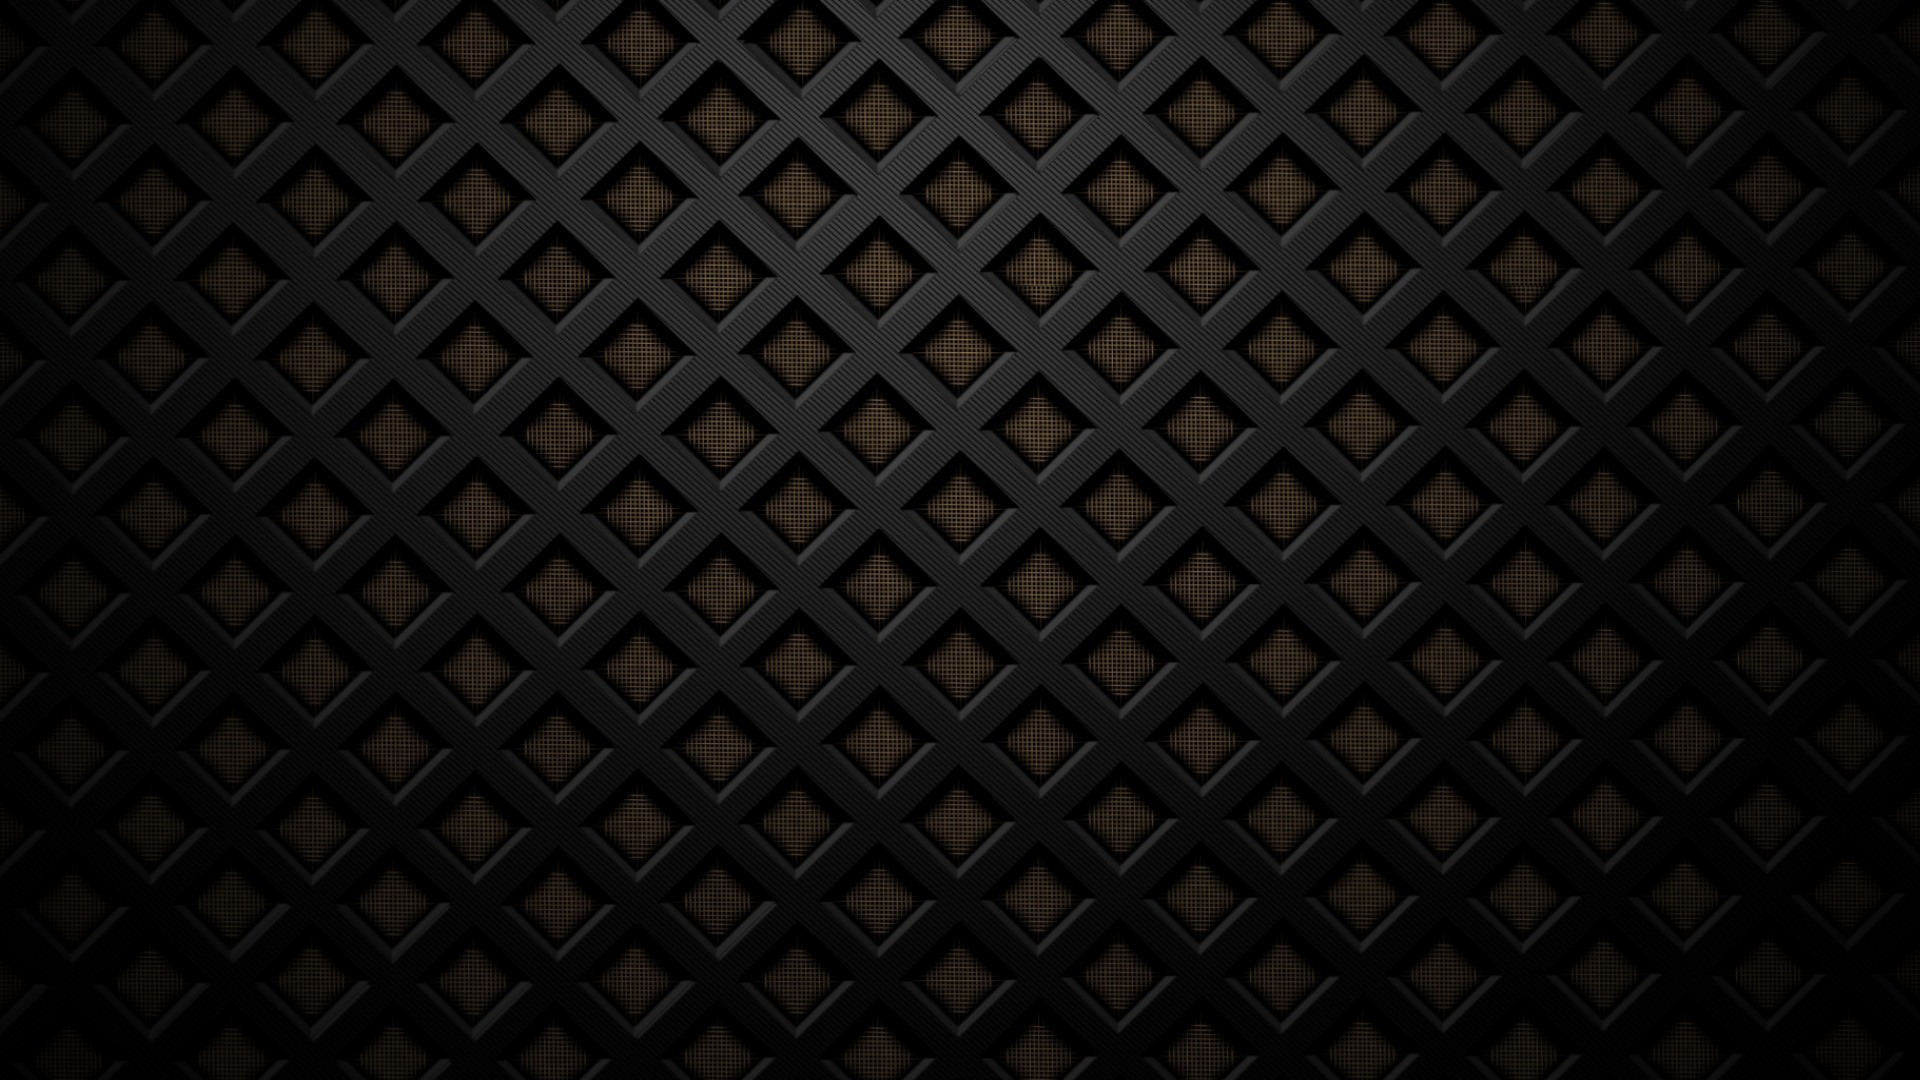 black texture wallpaper 71 images